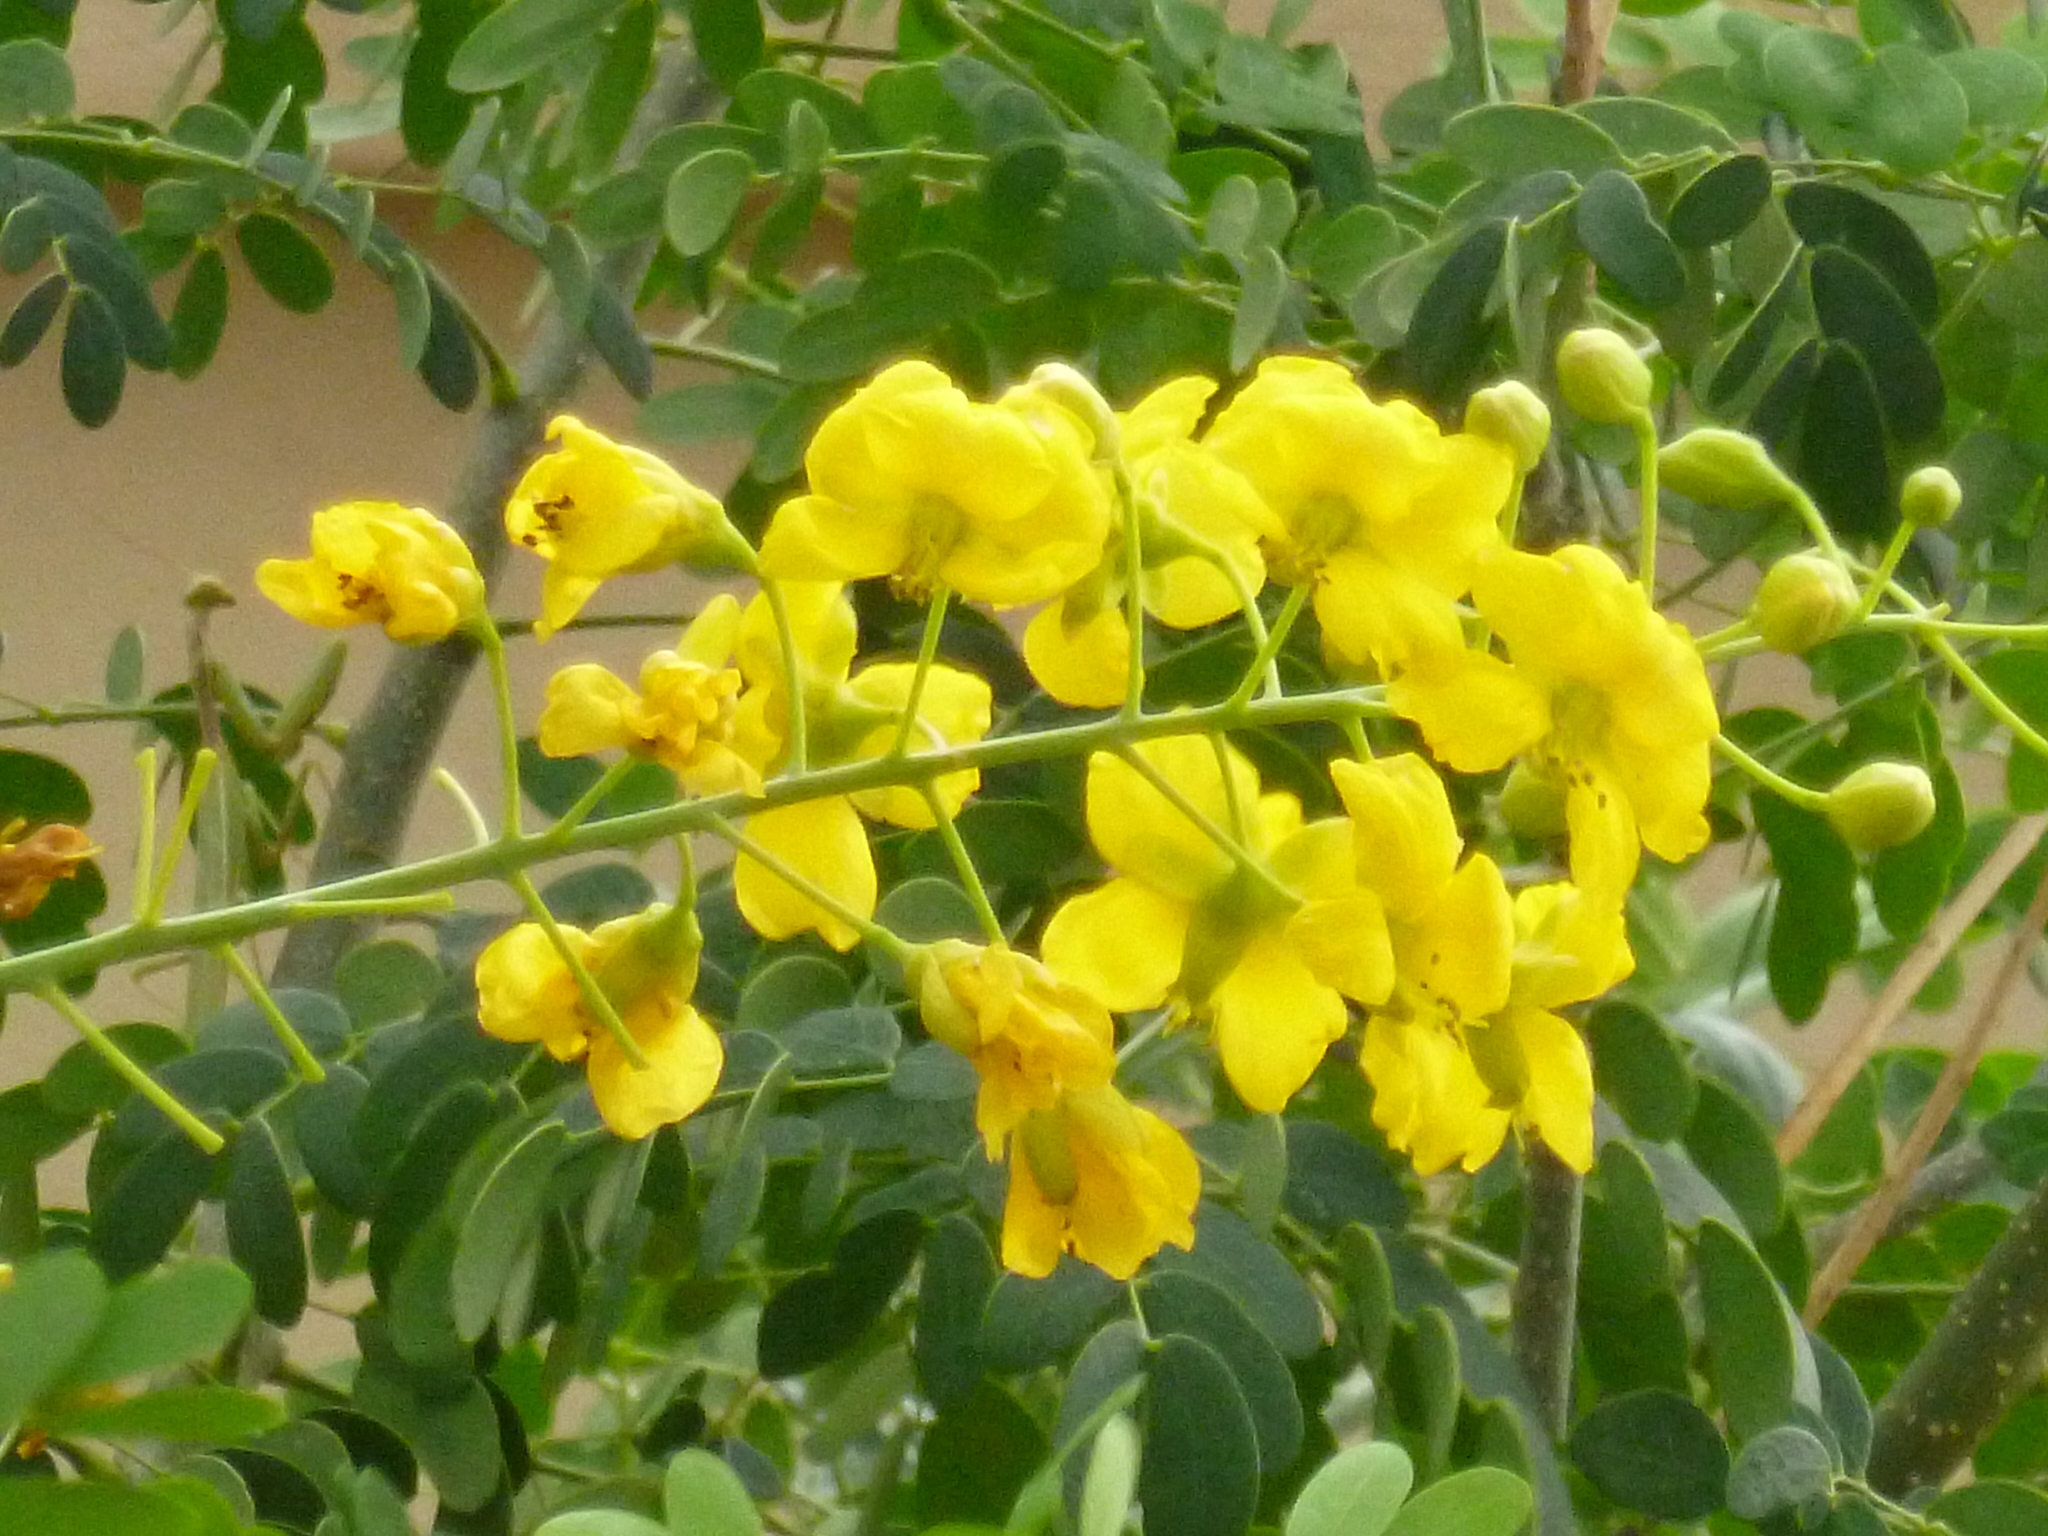 Bush with round leaves yellow flowers tjs garden plant arizona bush yellow flowers shrub mightylinksfo